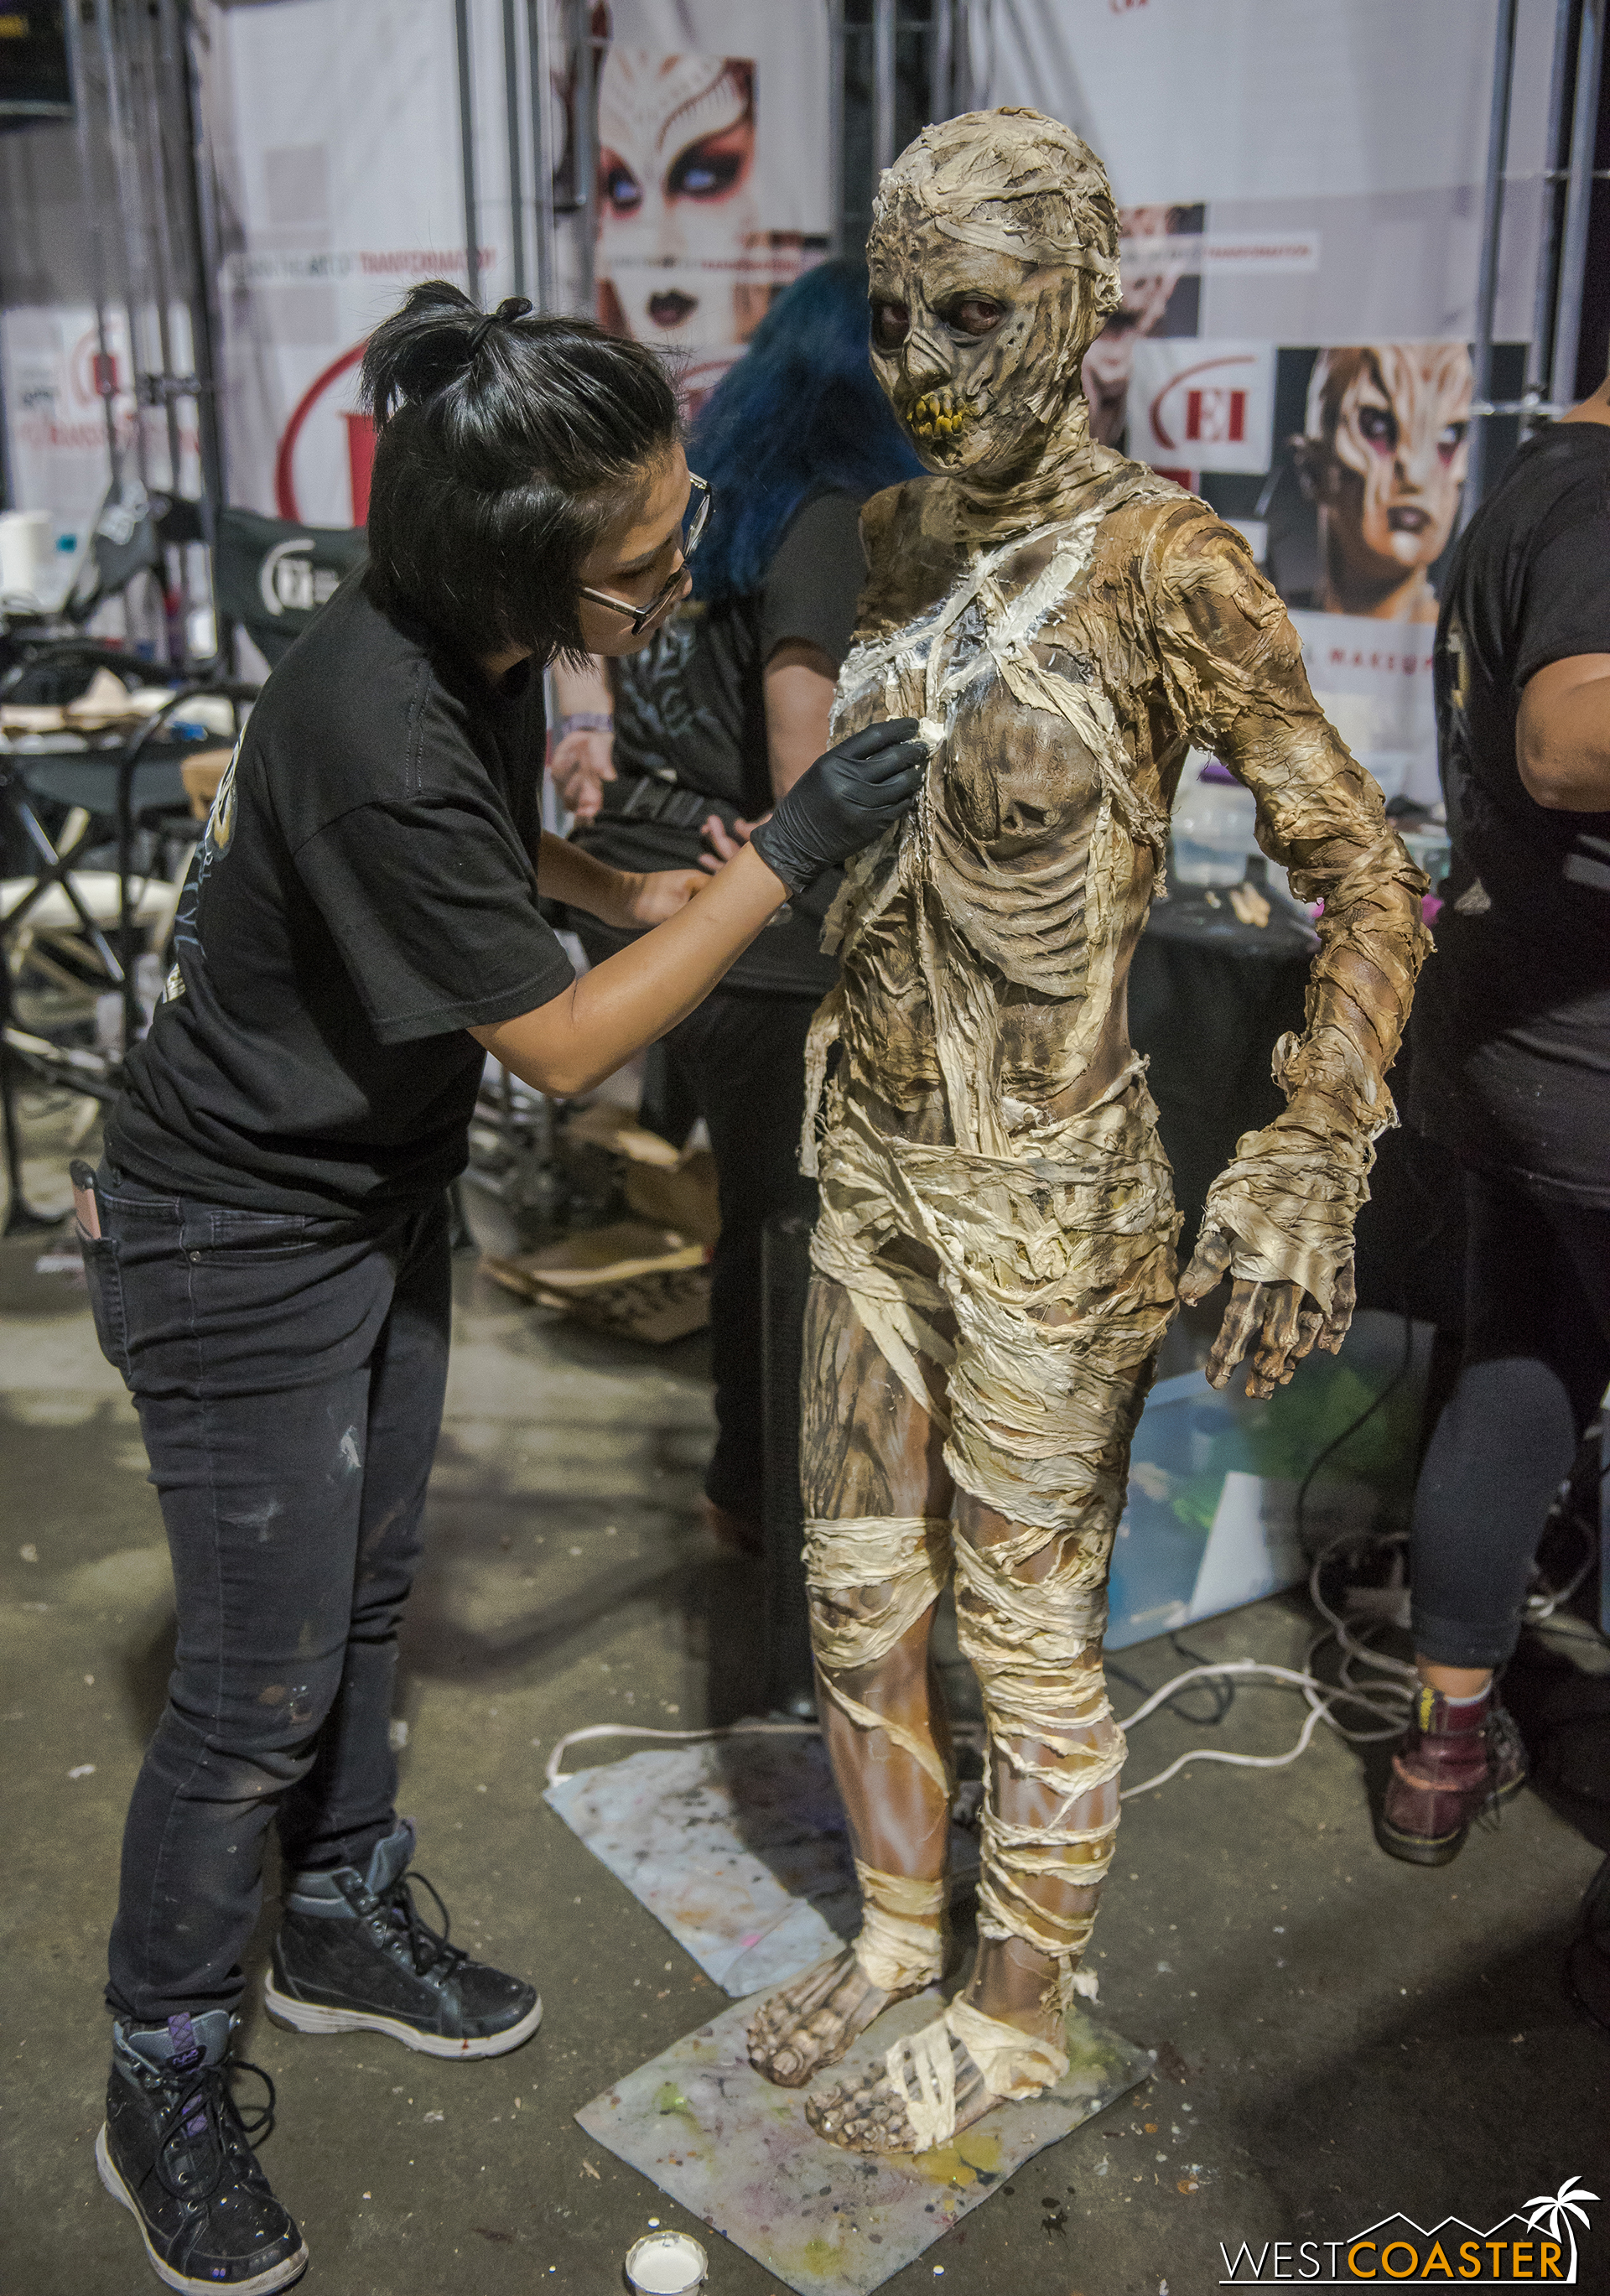 Makeup and prosthetics demonstrations abounded, with many models spending hours being done up into hideous and grotesque creatures.